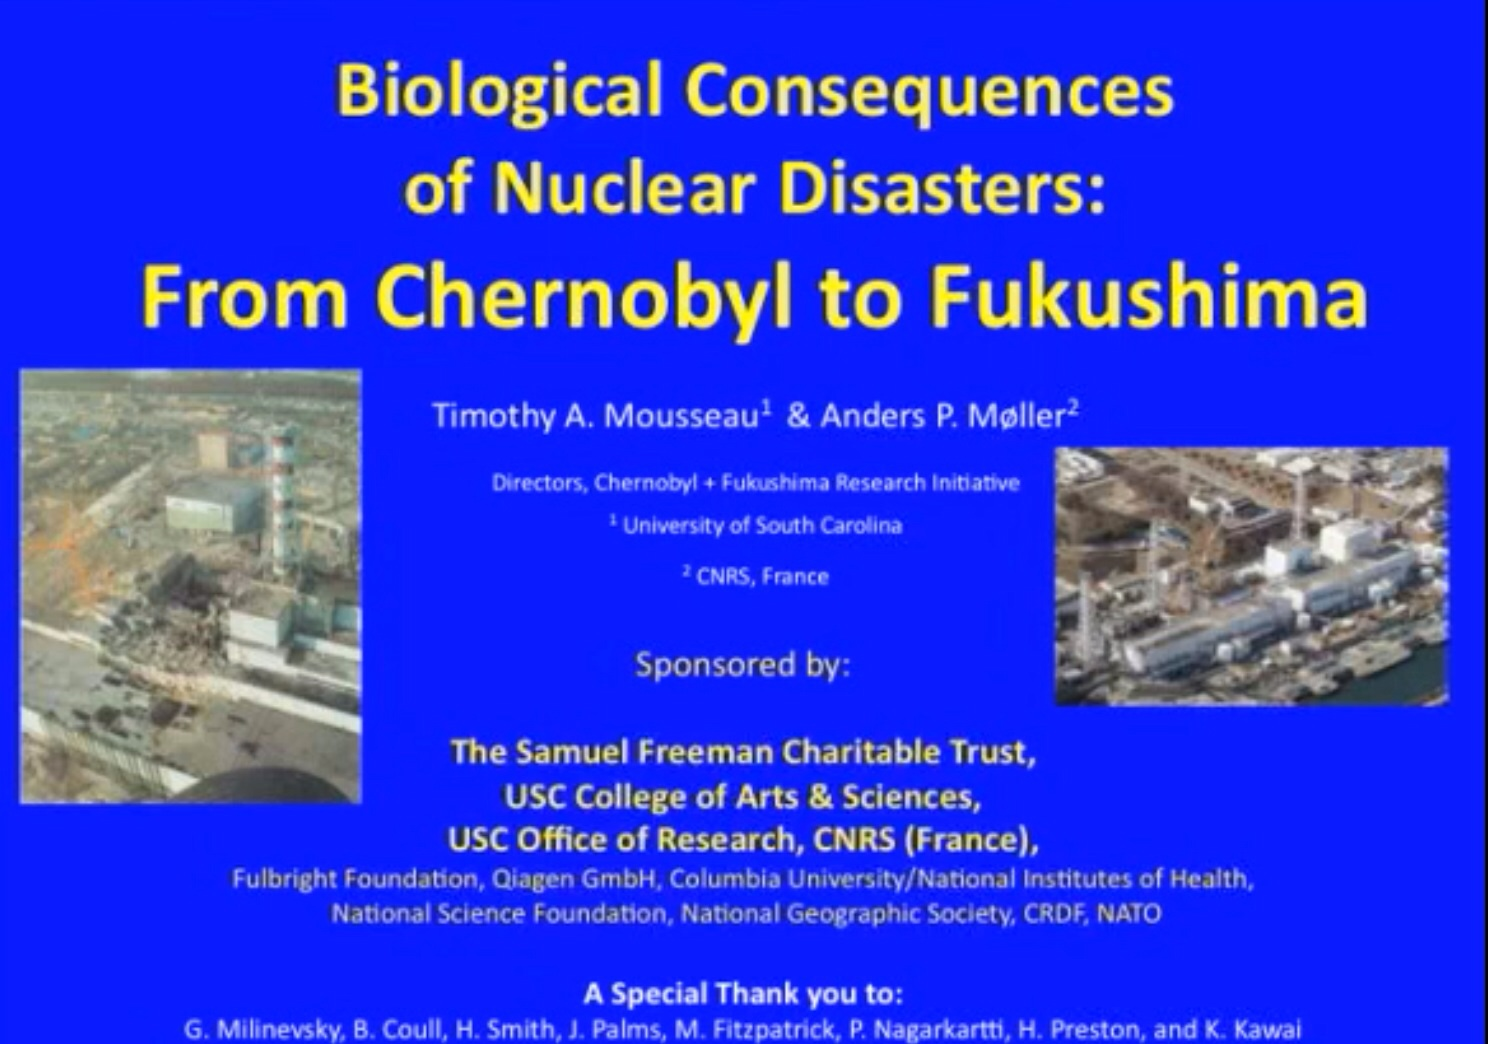 biological consequences of nuclear disasters from chernobyl to biological consequences of nuclear disasters from chernobyl to fukushima loc mousseau moller funding